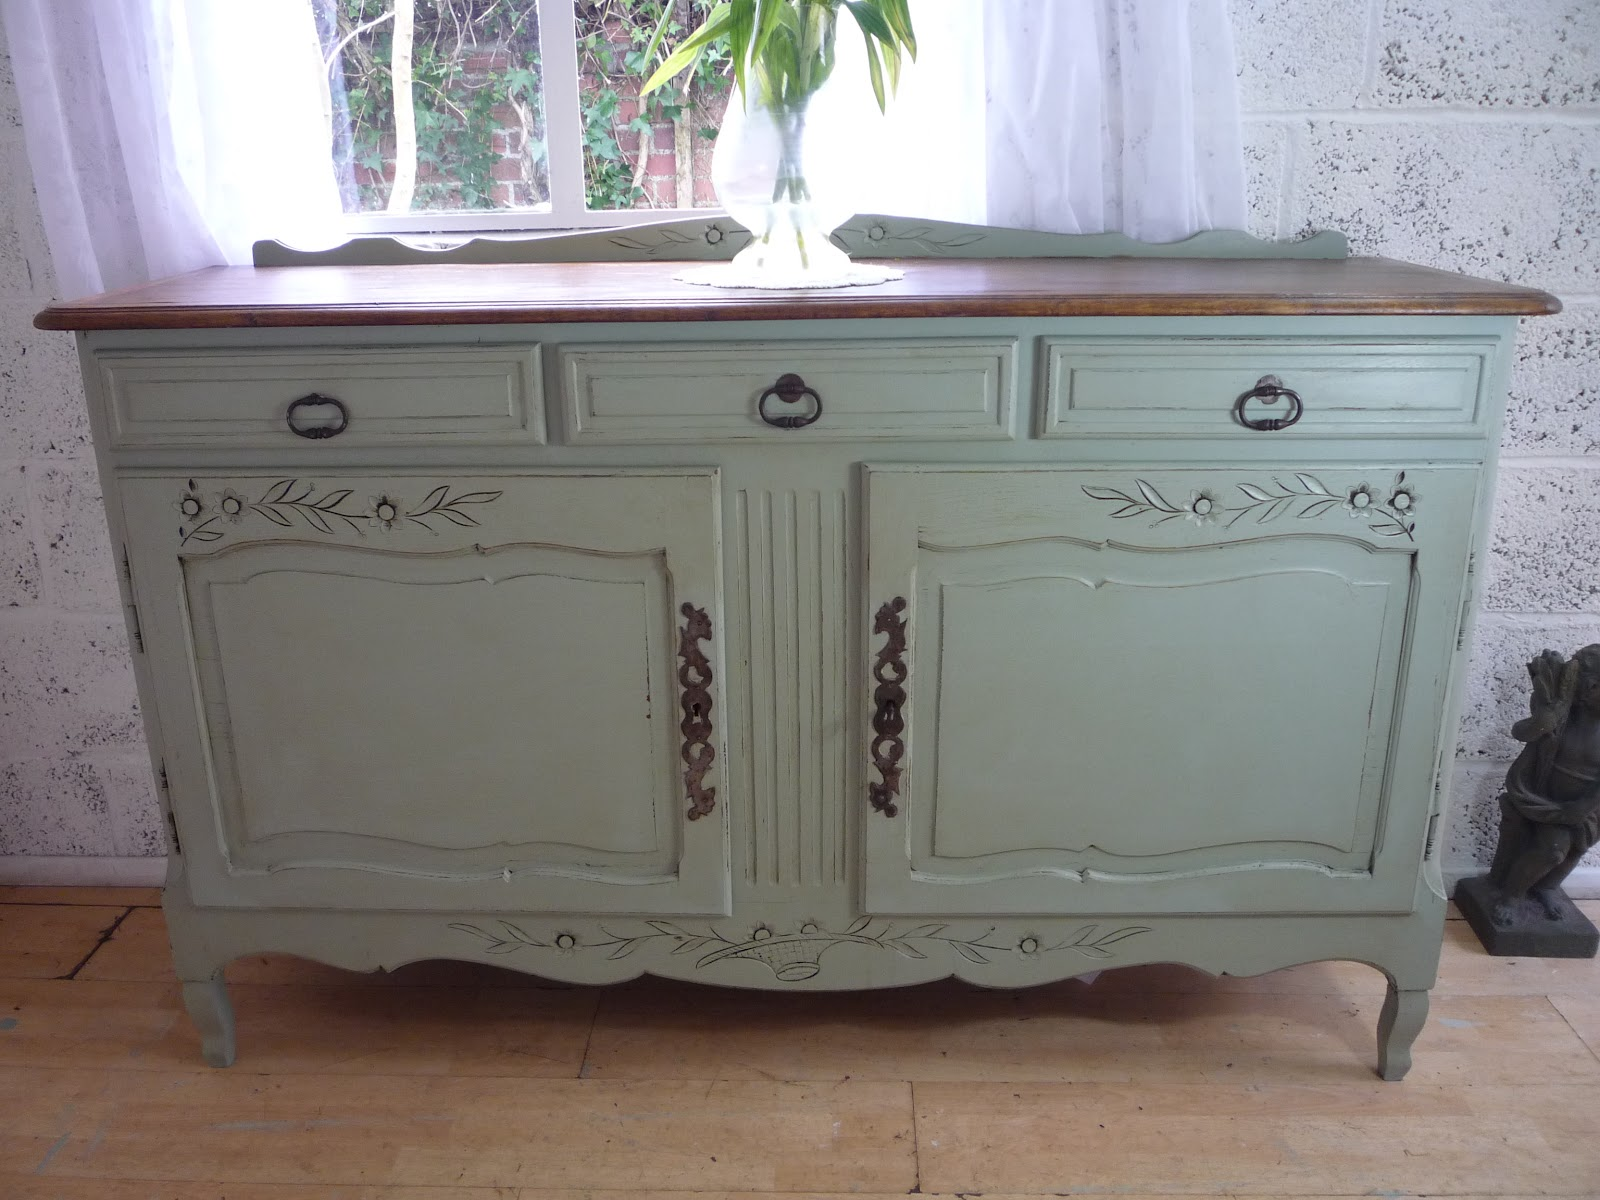 Dazzle vintage furniture easy shabby chic how to create Images of painted furniture